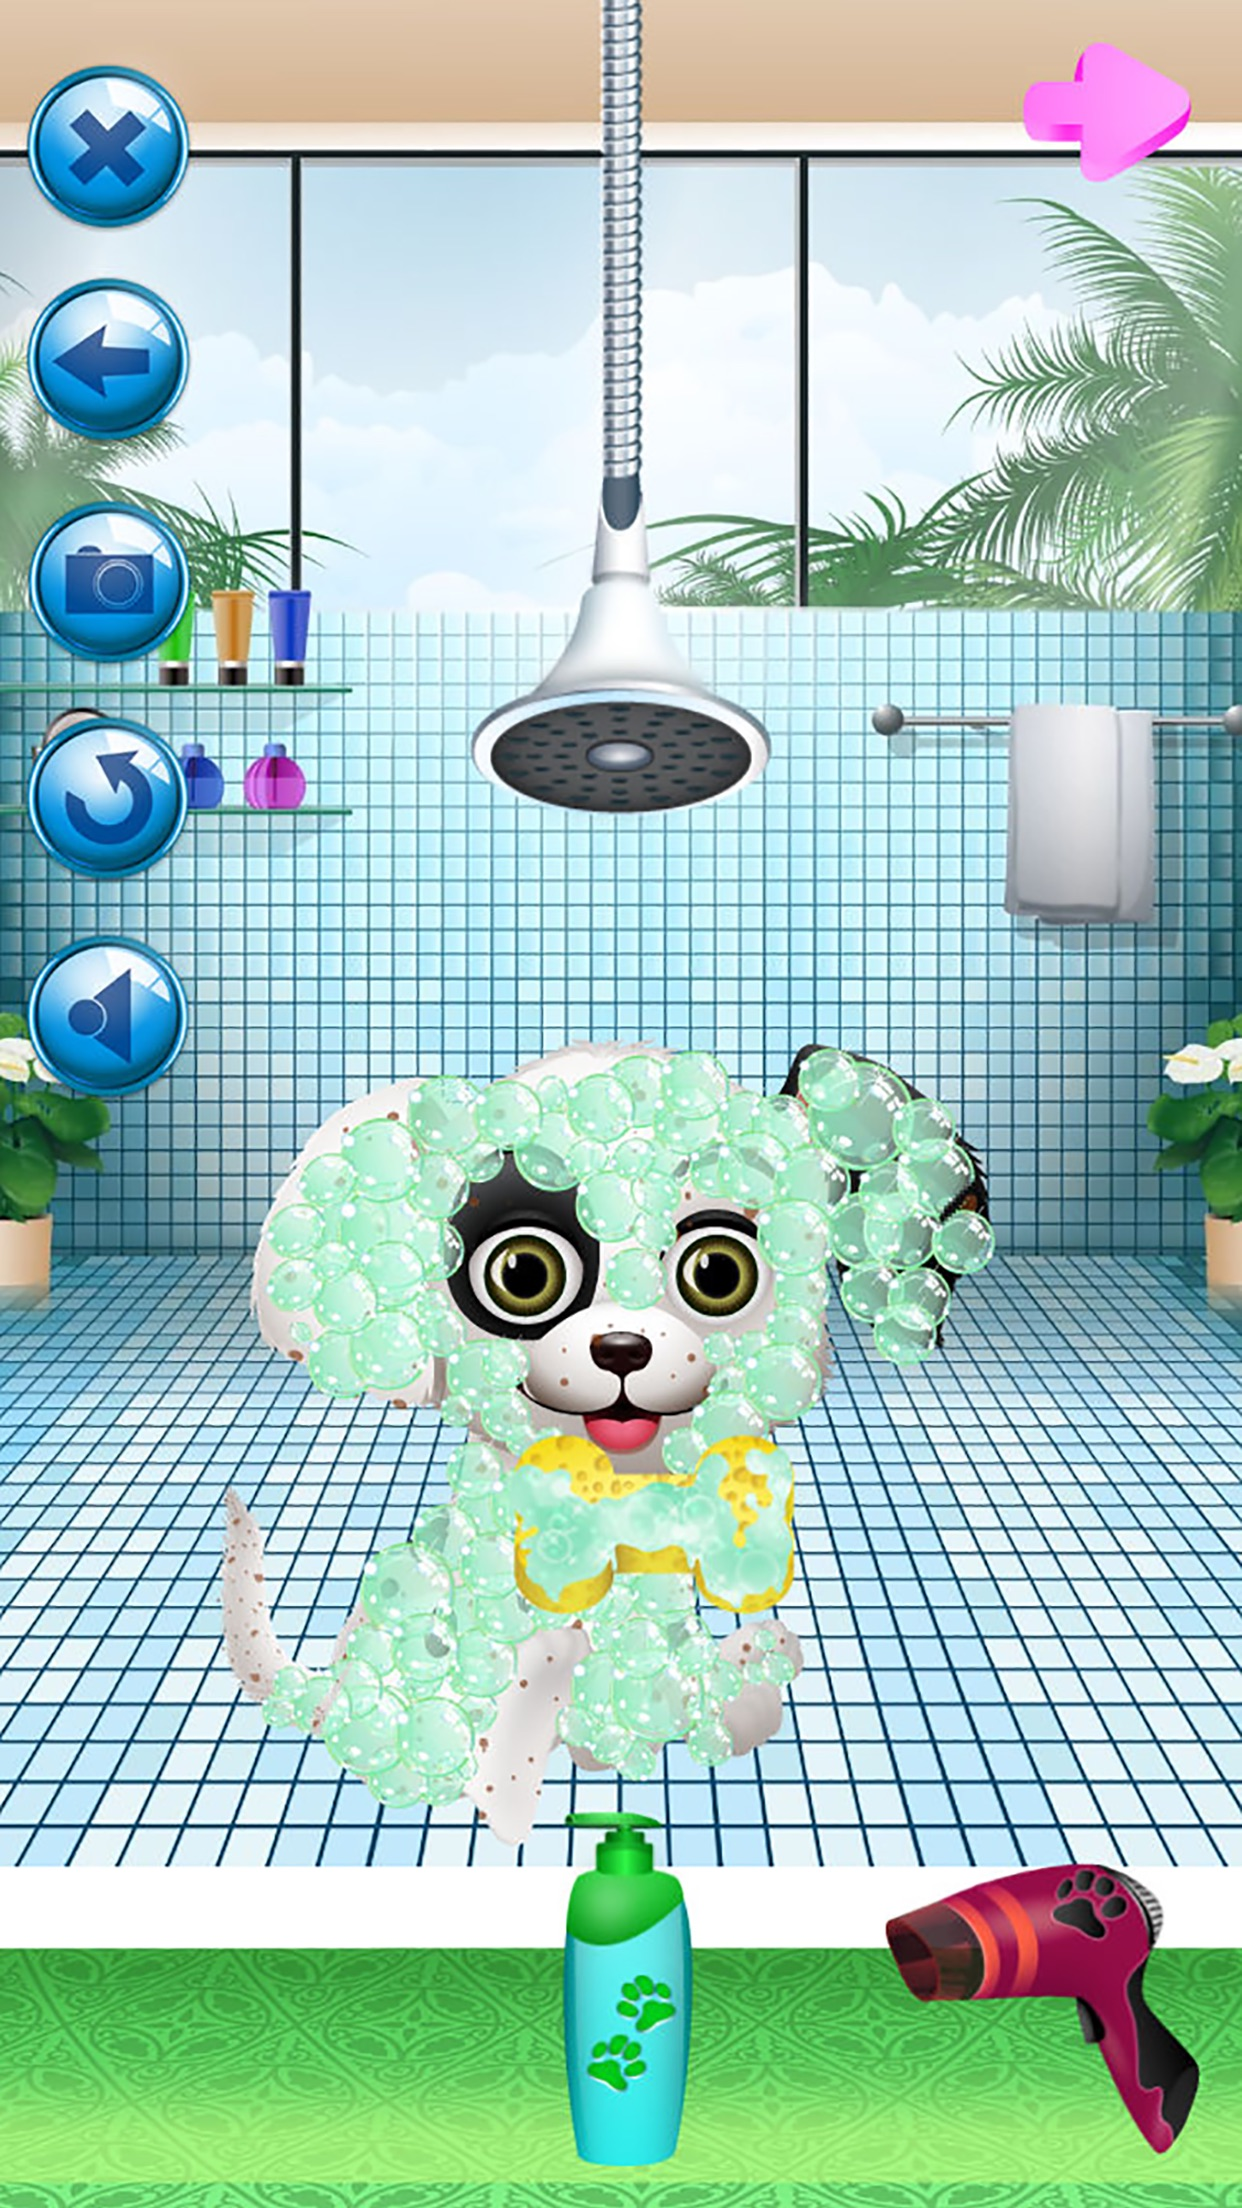 Puppy Spa - Kids Animal Makeover Games Screenshot